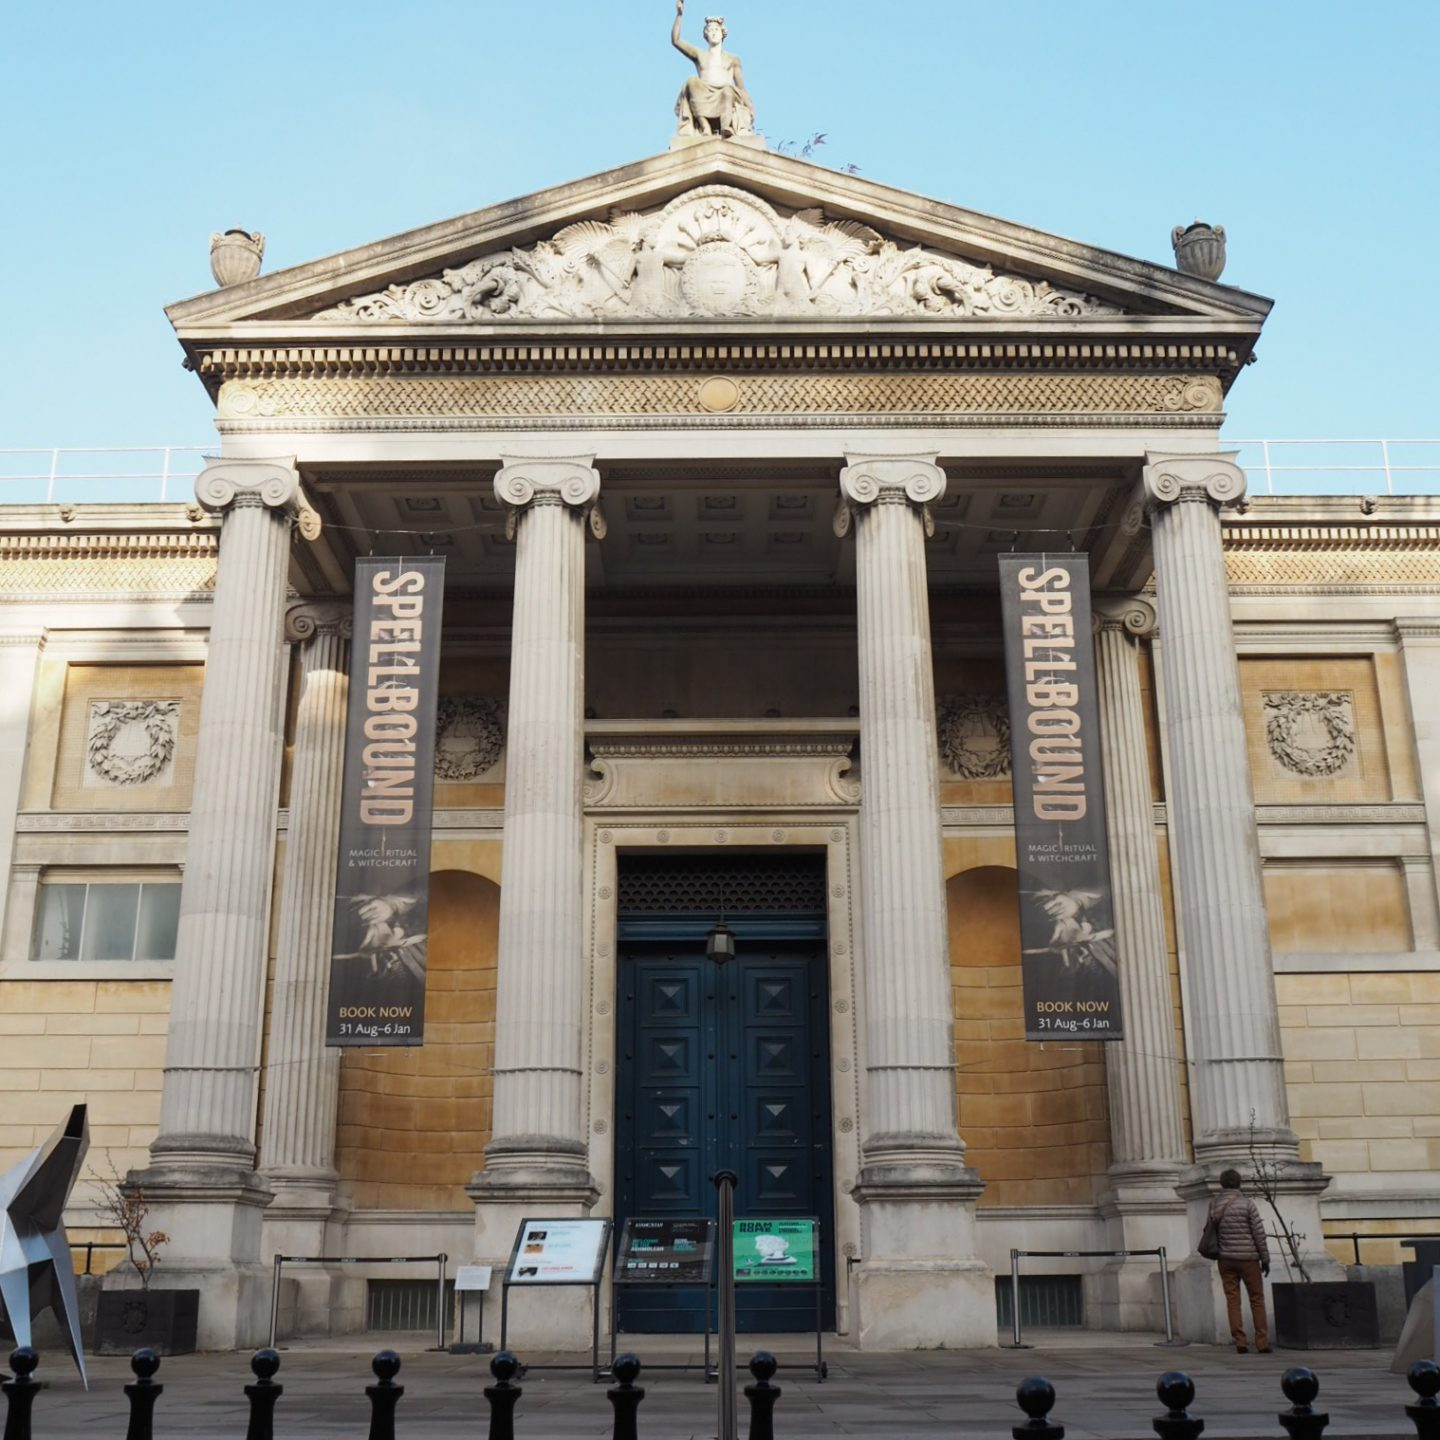 24 hours in Oxford - Ashmolean Museum